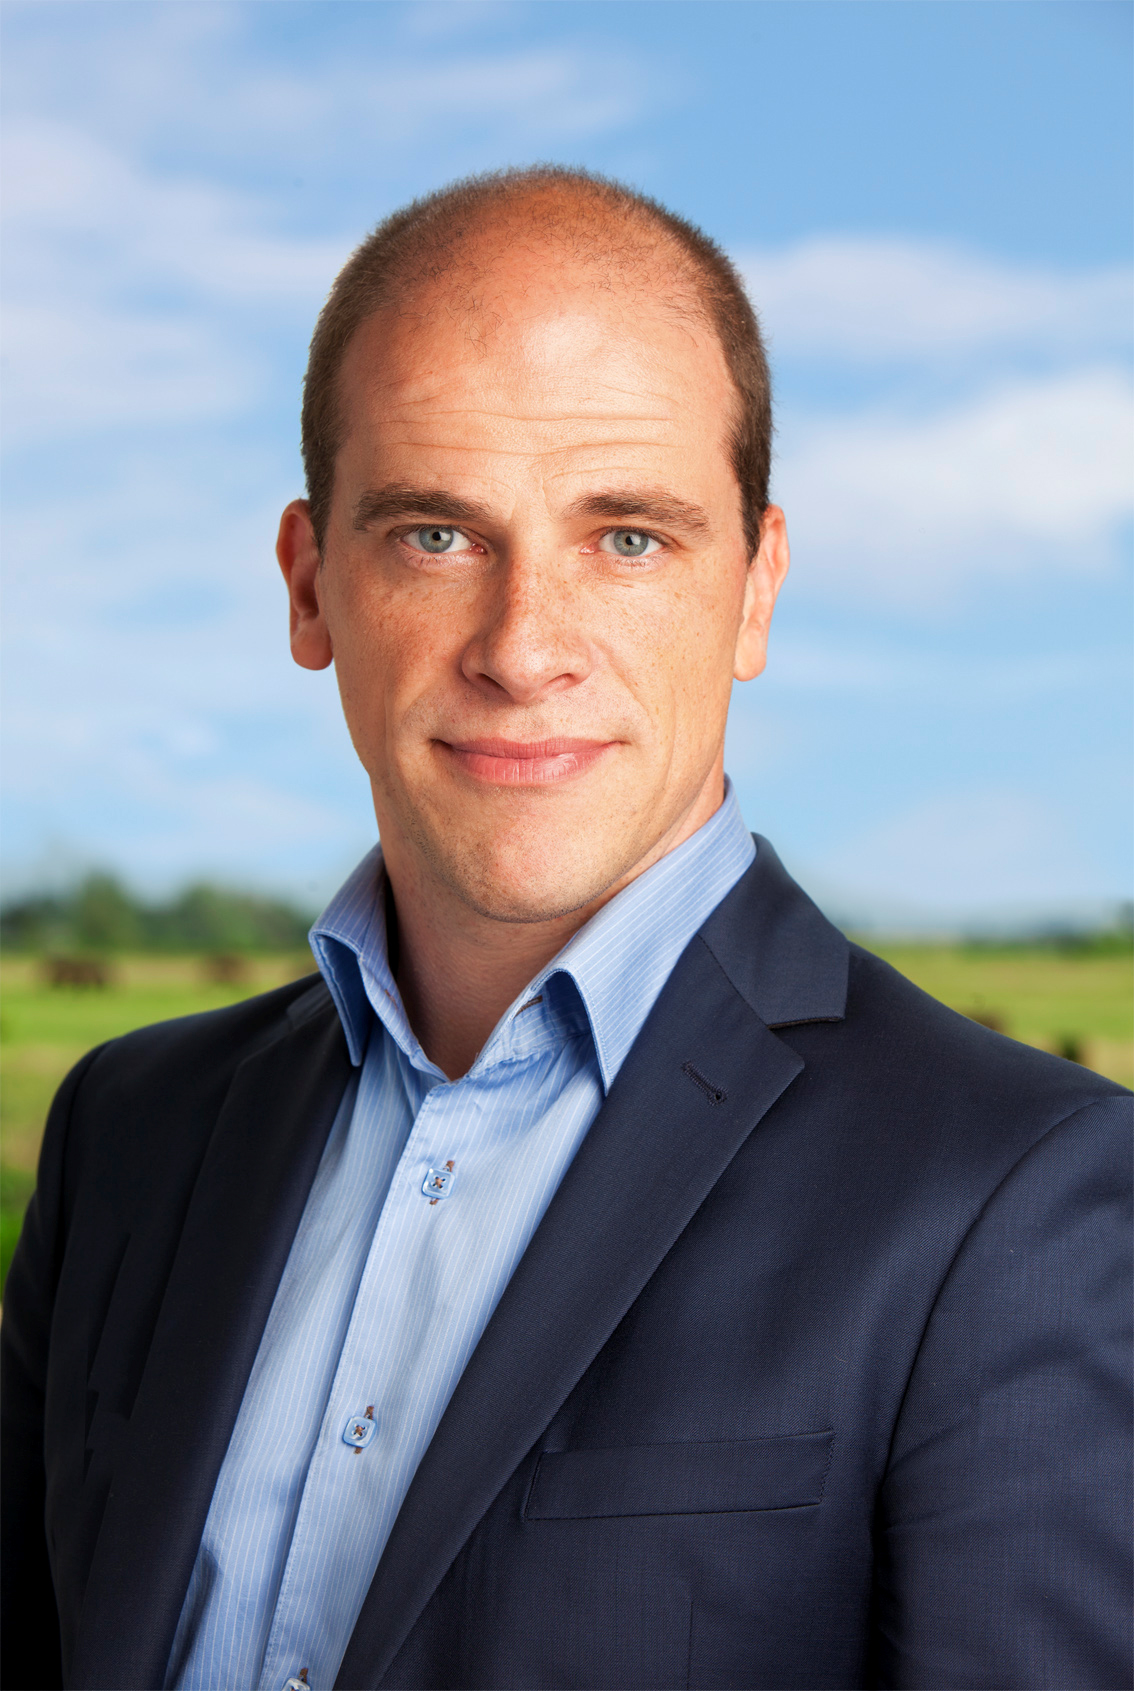 The 49-year old son of father (?) and mother(?) Diederik Samsom in 2021 photo. Diederik Samsom earned a  million dollar salary - leaving the net worth at 5 million in 2021